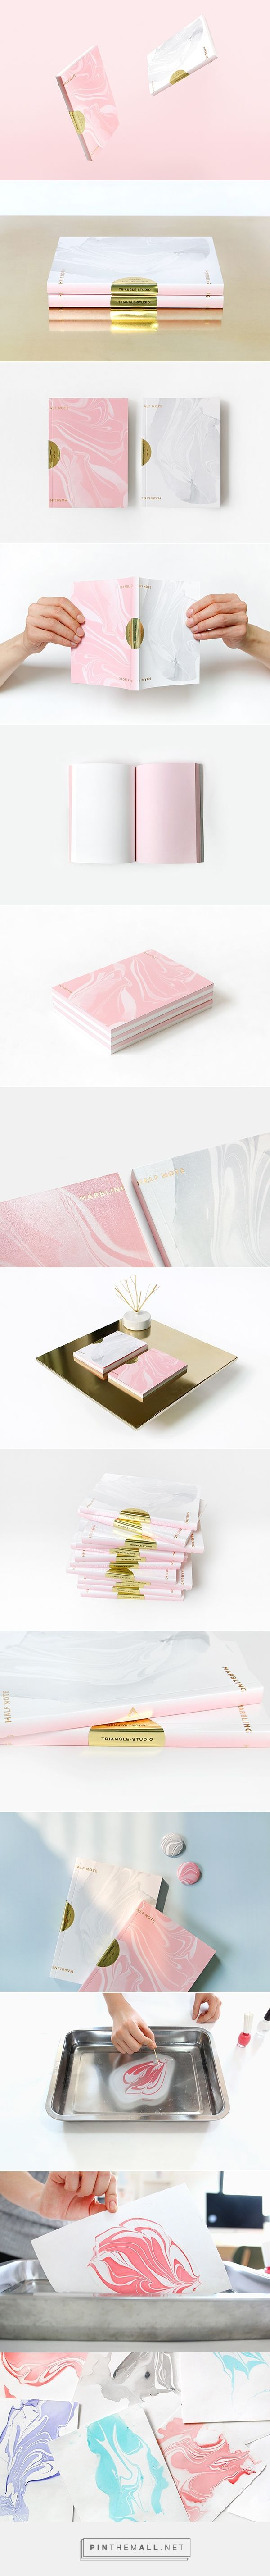 Two sided #booklet and #brochure design with marbled cover and gold foil: